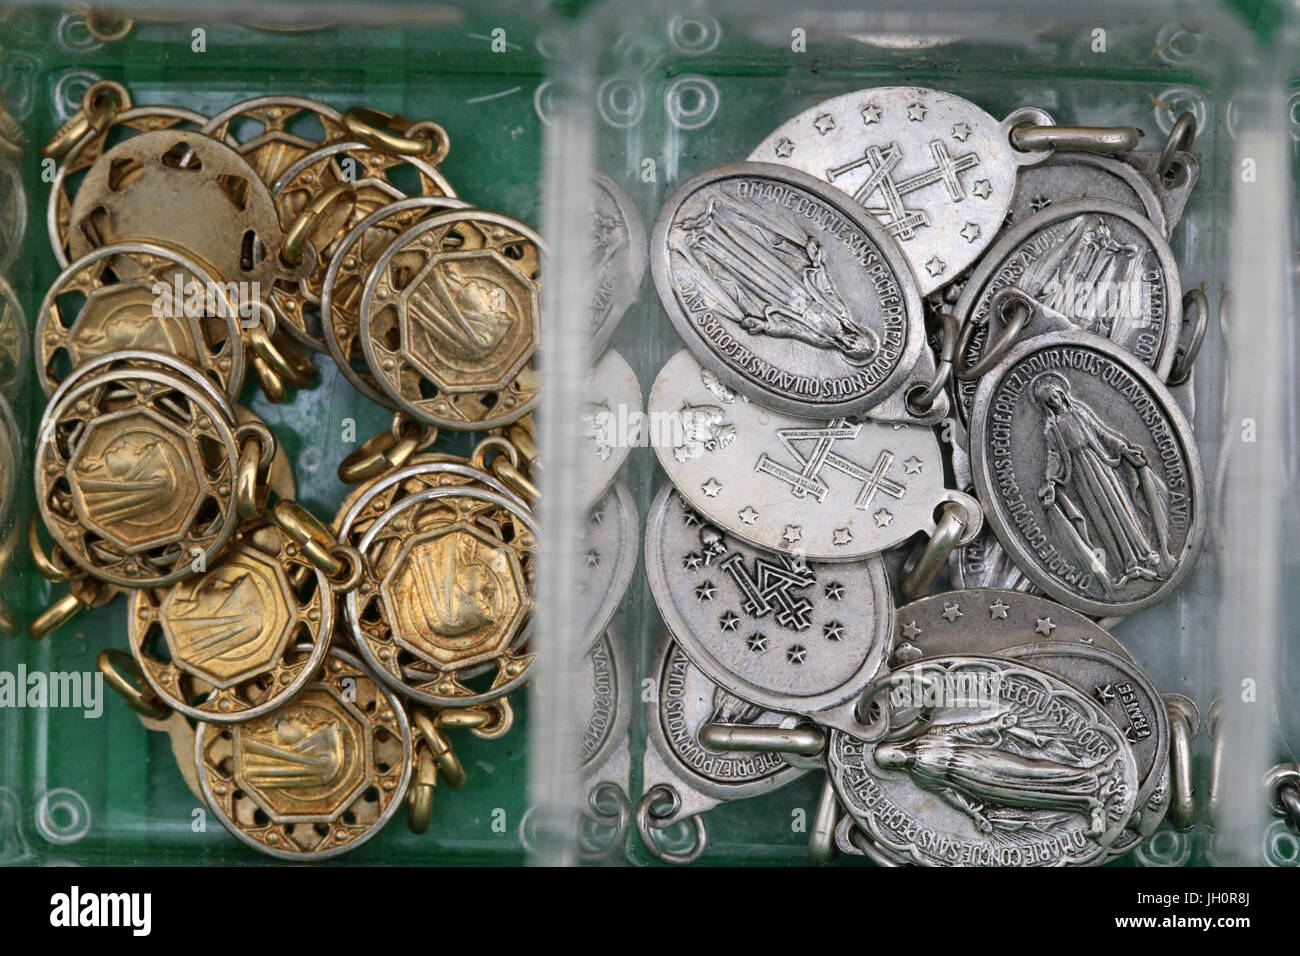 Christian medals for sale.  France. - Stock Image